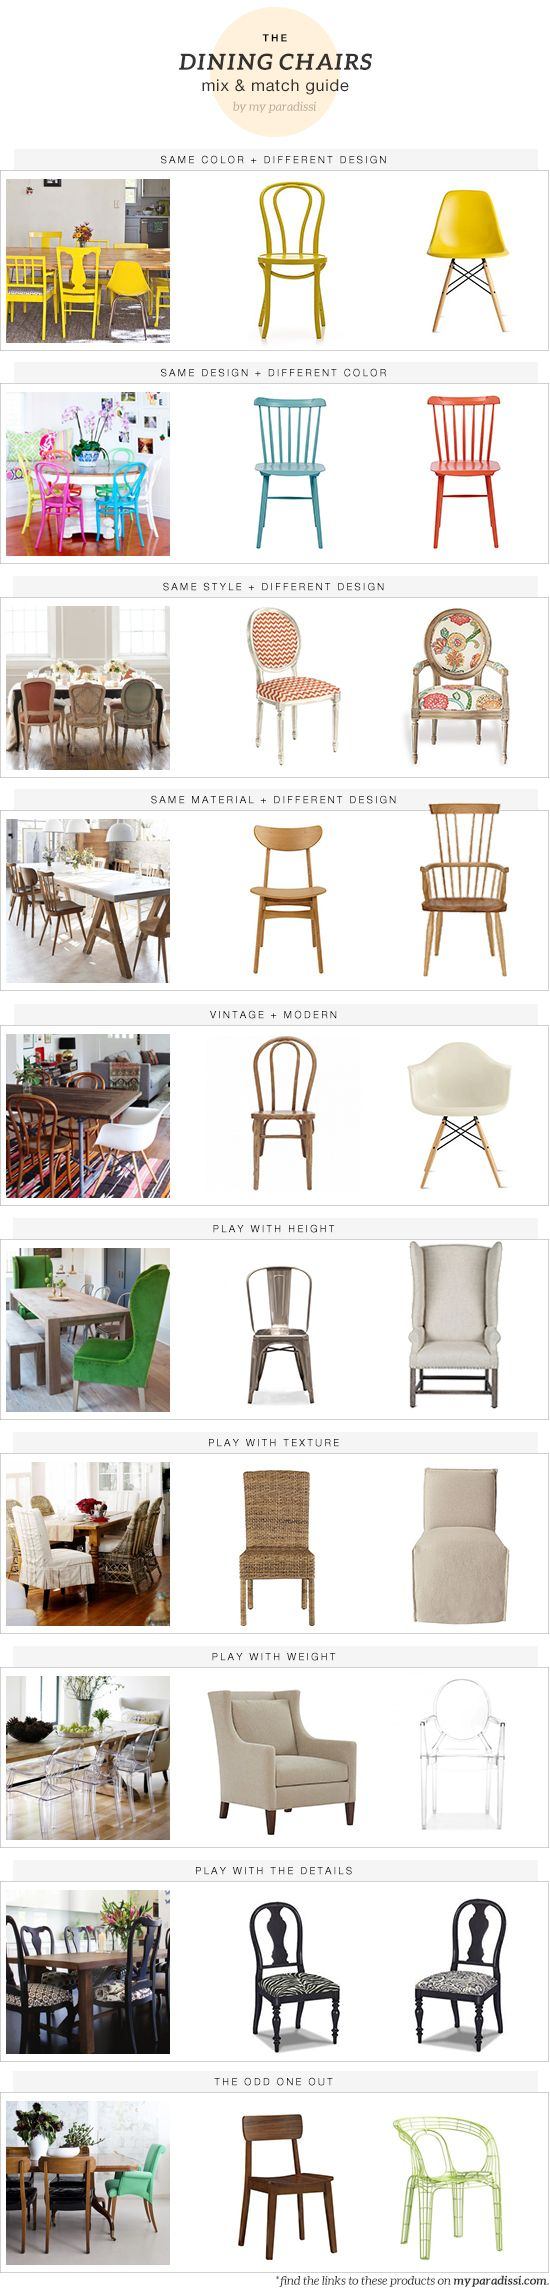 A fun guide to mixing + matching dining chairs!